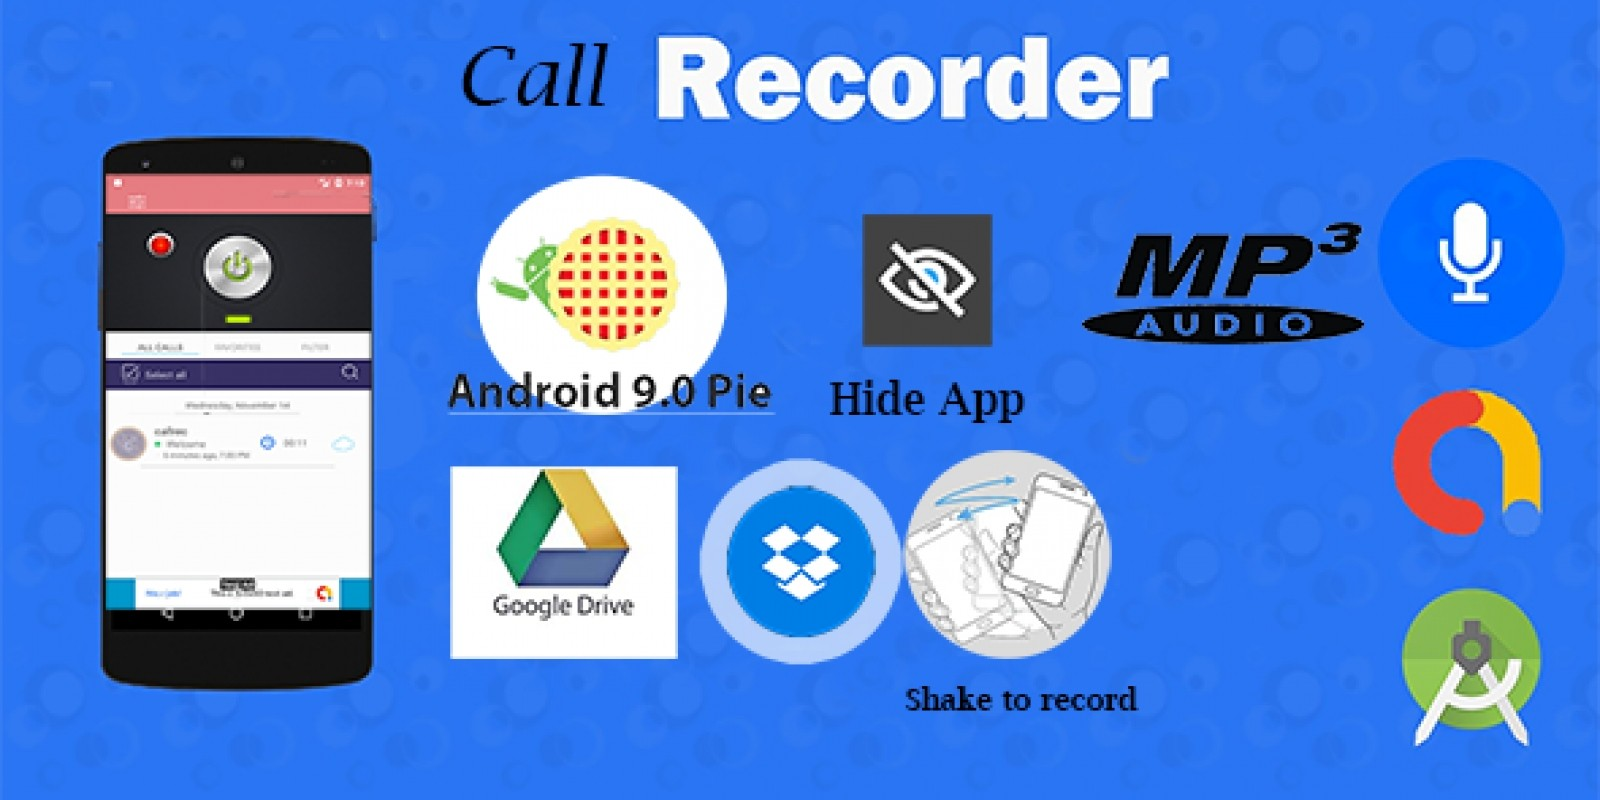 Call Recorder - Android Source Code